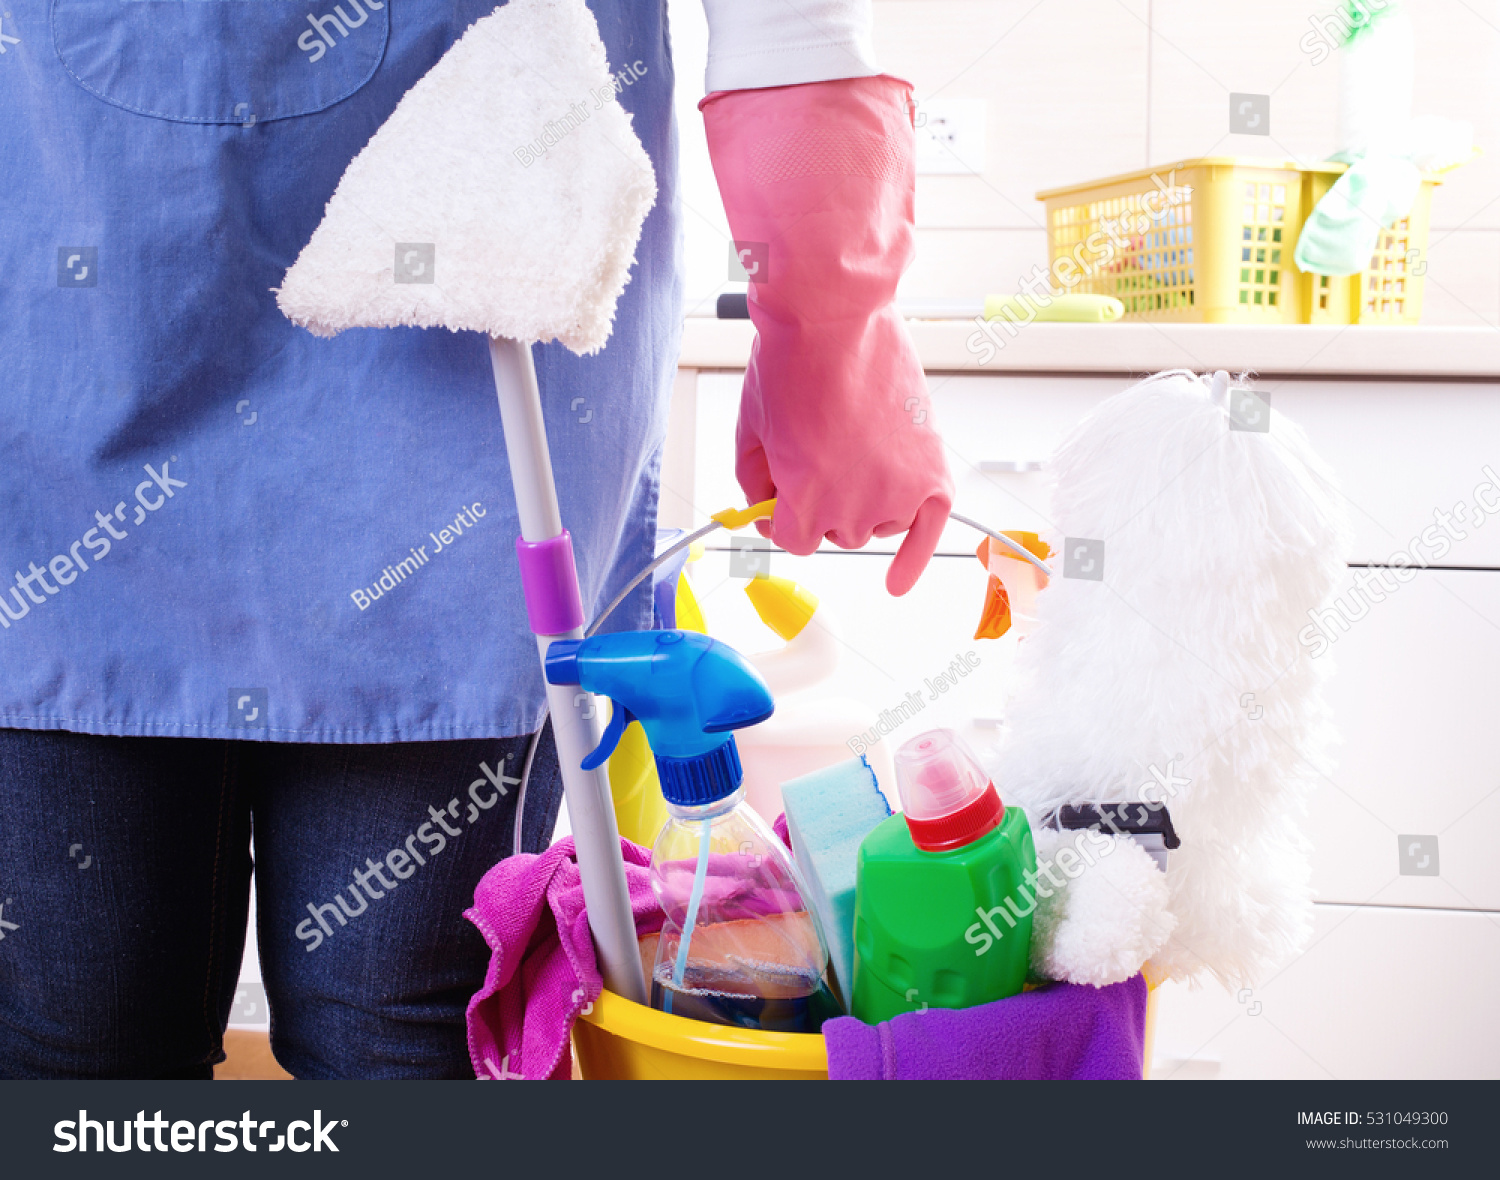 White gloves apron cleaning services - House Keeper With Apron And Safety Gloves Holding Basket Full Of Cleaning Supplies And Equipment In